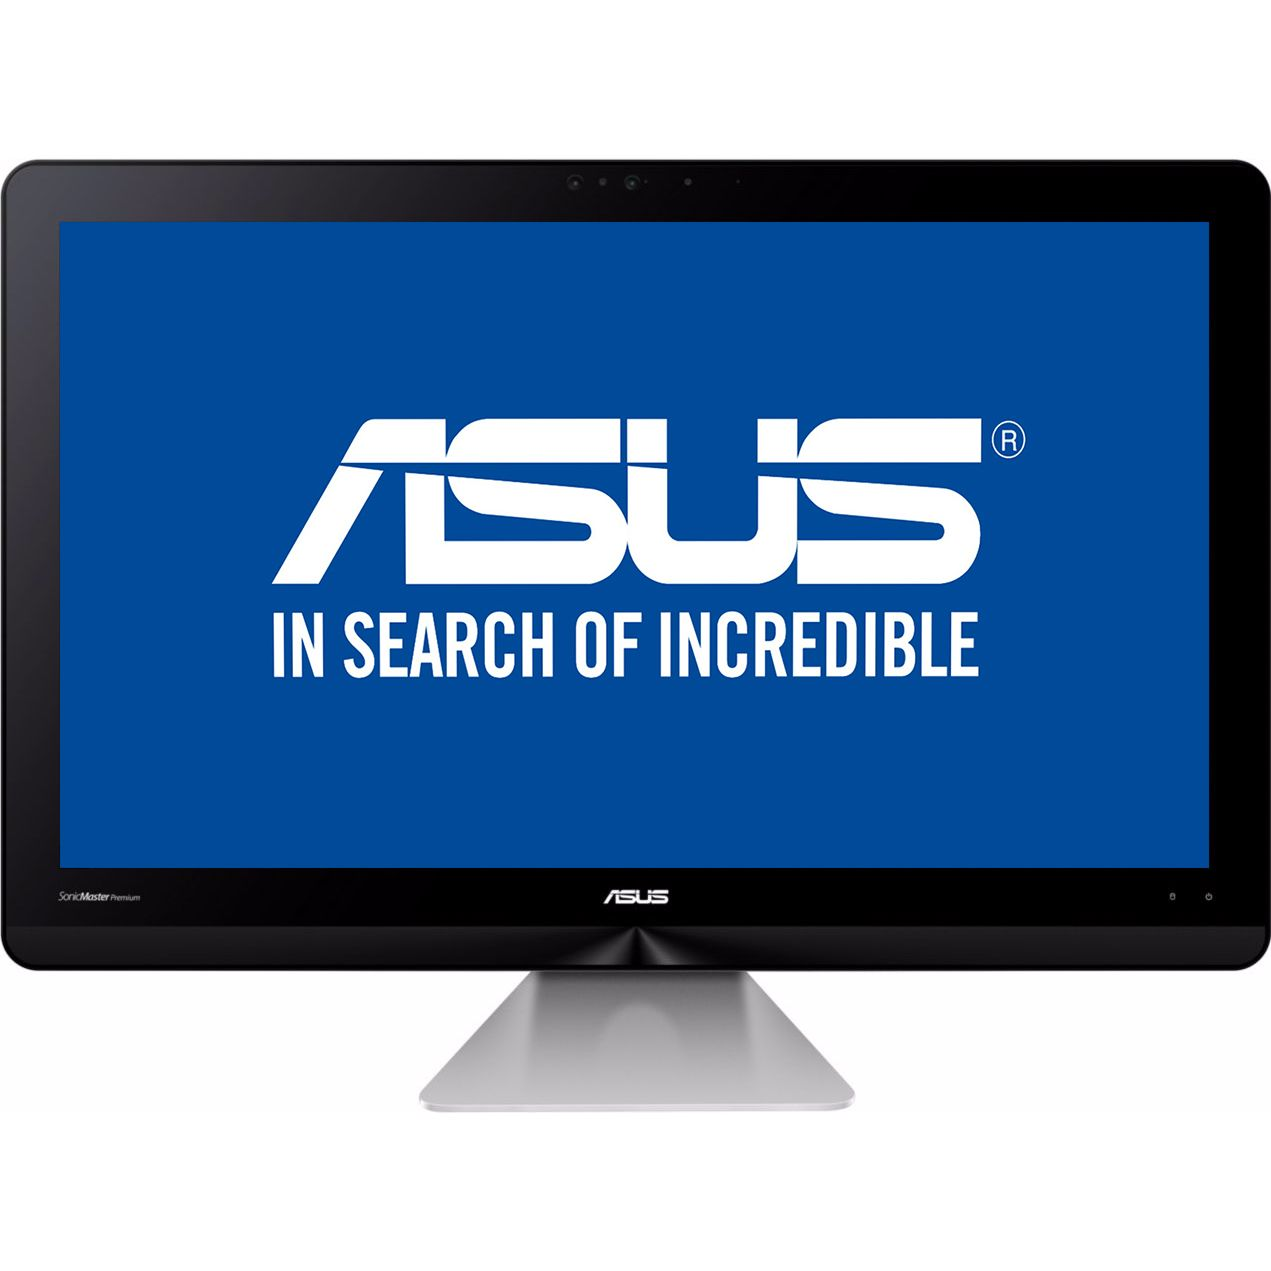 Sistem All-In-One Asus ZN241ICUK 23.8 Full HD Intel Core i5-7200U RAM 8GB HDD 1TB FreeDOS